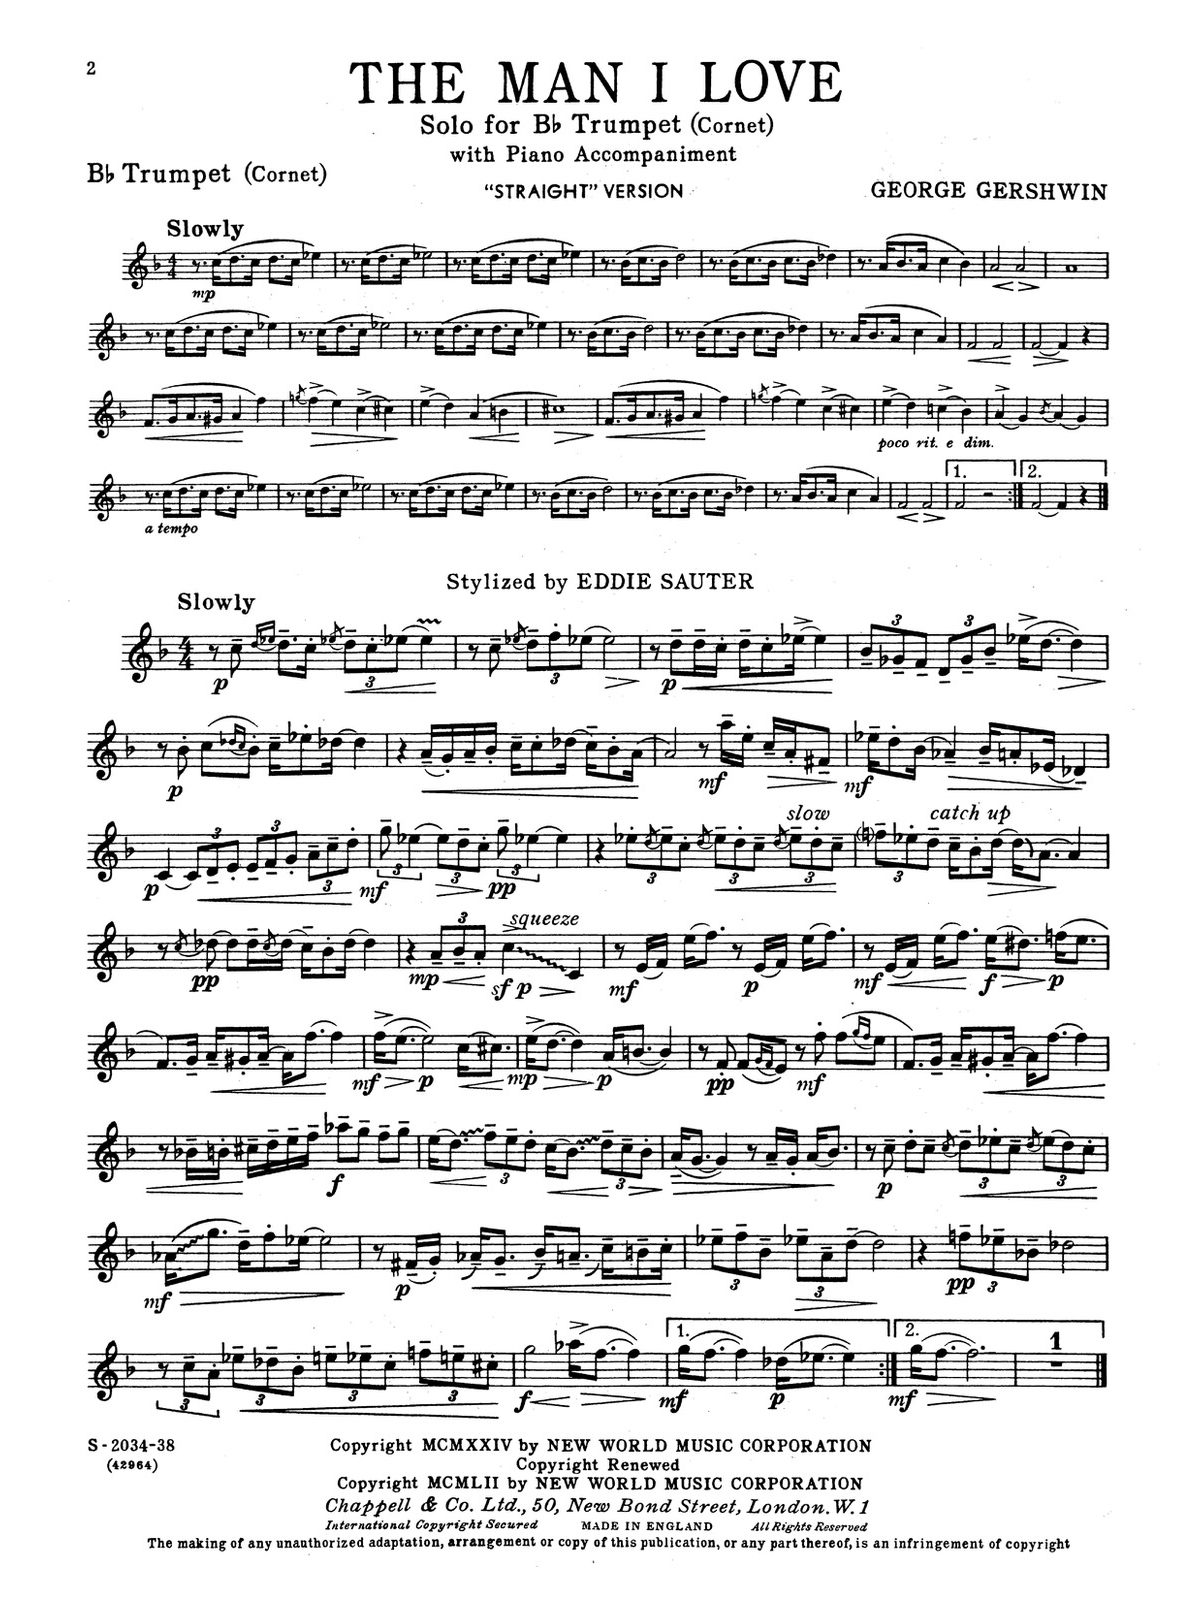 Gershwin, For Trumpet and Piano Book 1-p06